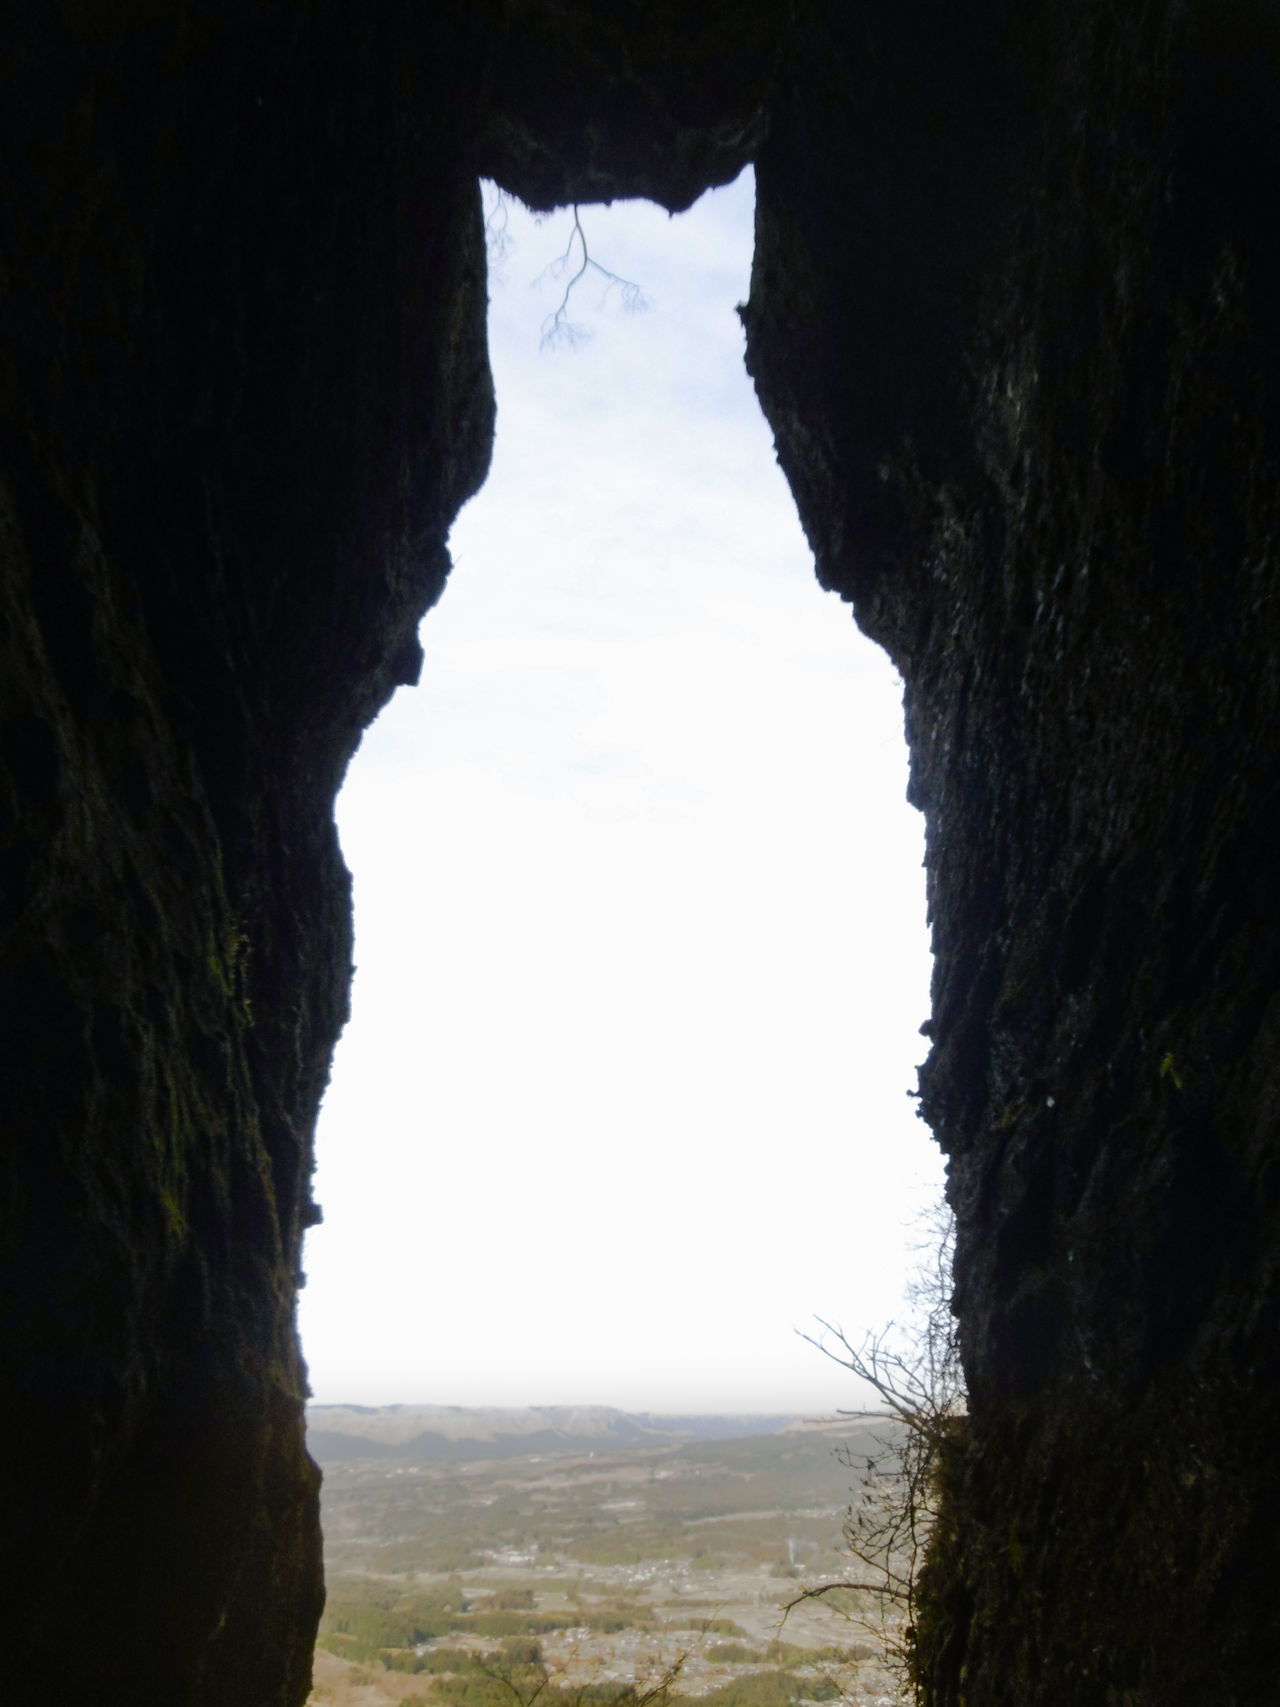 The cavern's opening resembles a cat looking out over Minamiaso.